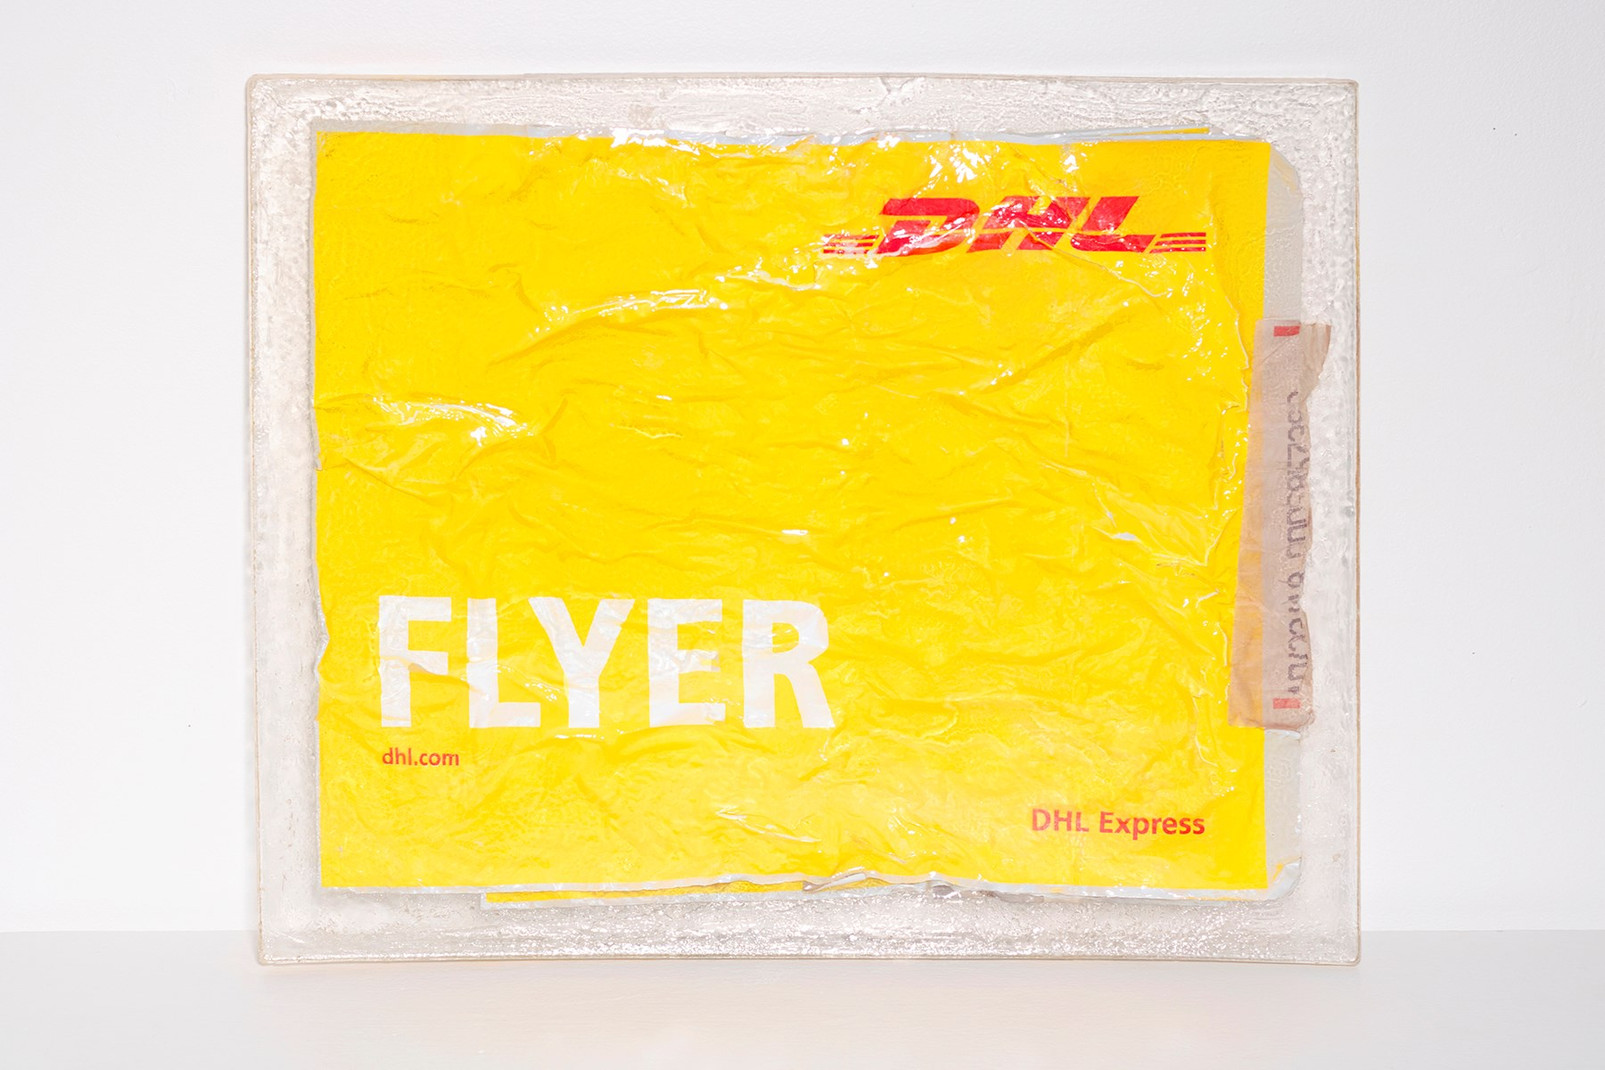 """Dalila Sanabria, """"Visas,"""" 2019. Resin slab of DHL flyers, unframed, 17 x 21.75 x 0.5 in. Image courtesy of the artist"""